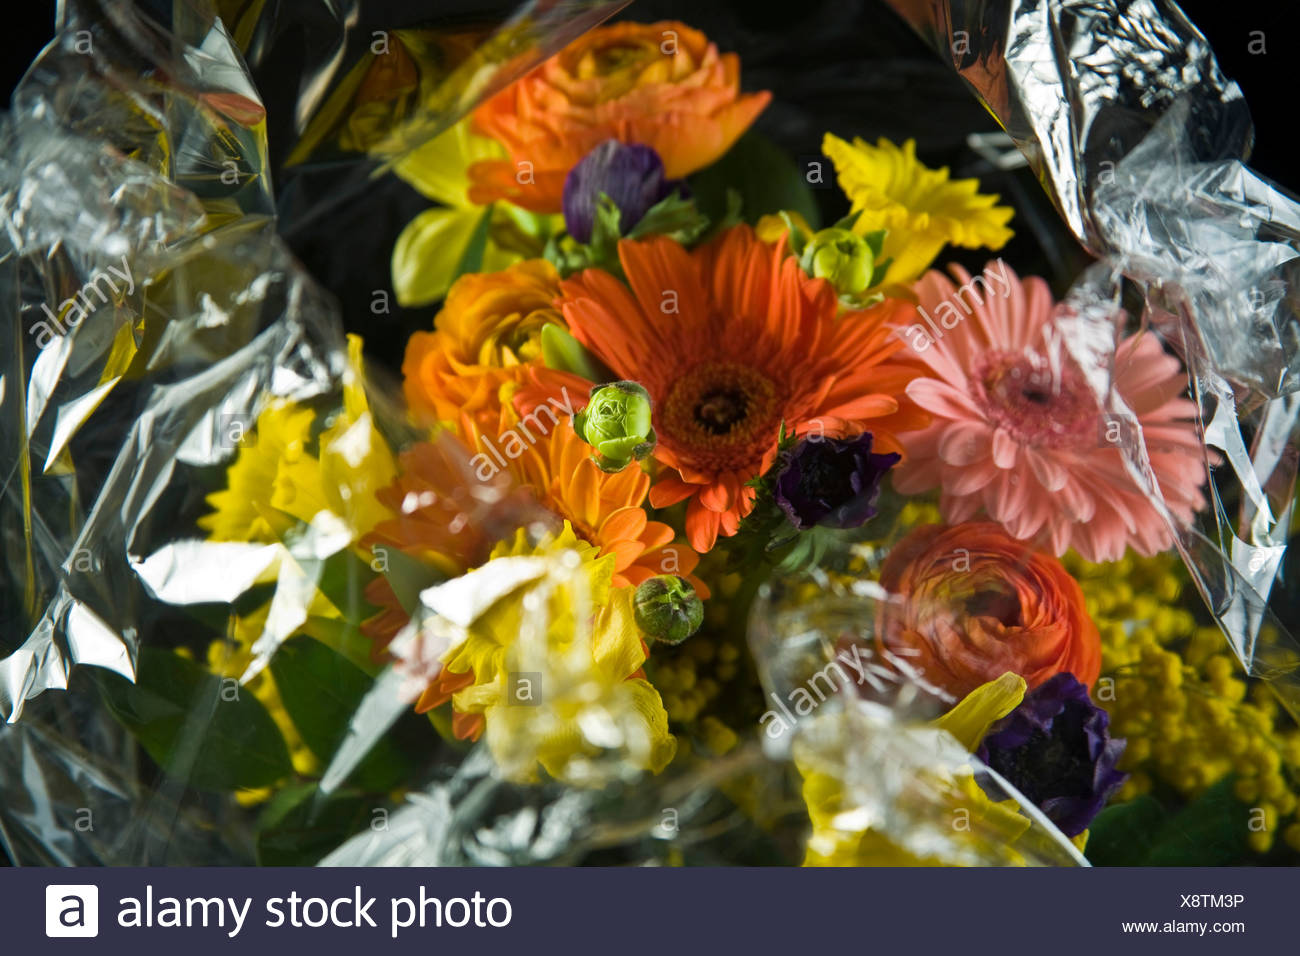 Bouquet of flowers wrapped in cellophane - Stock Image